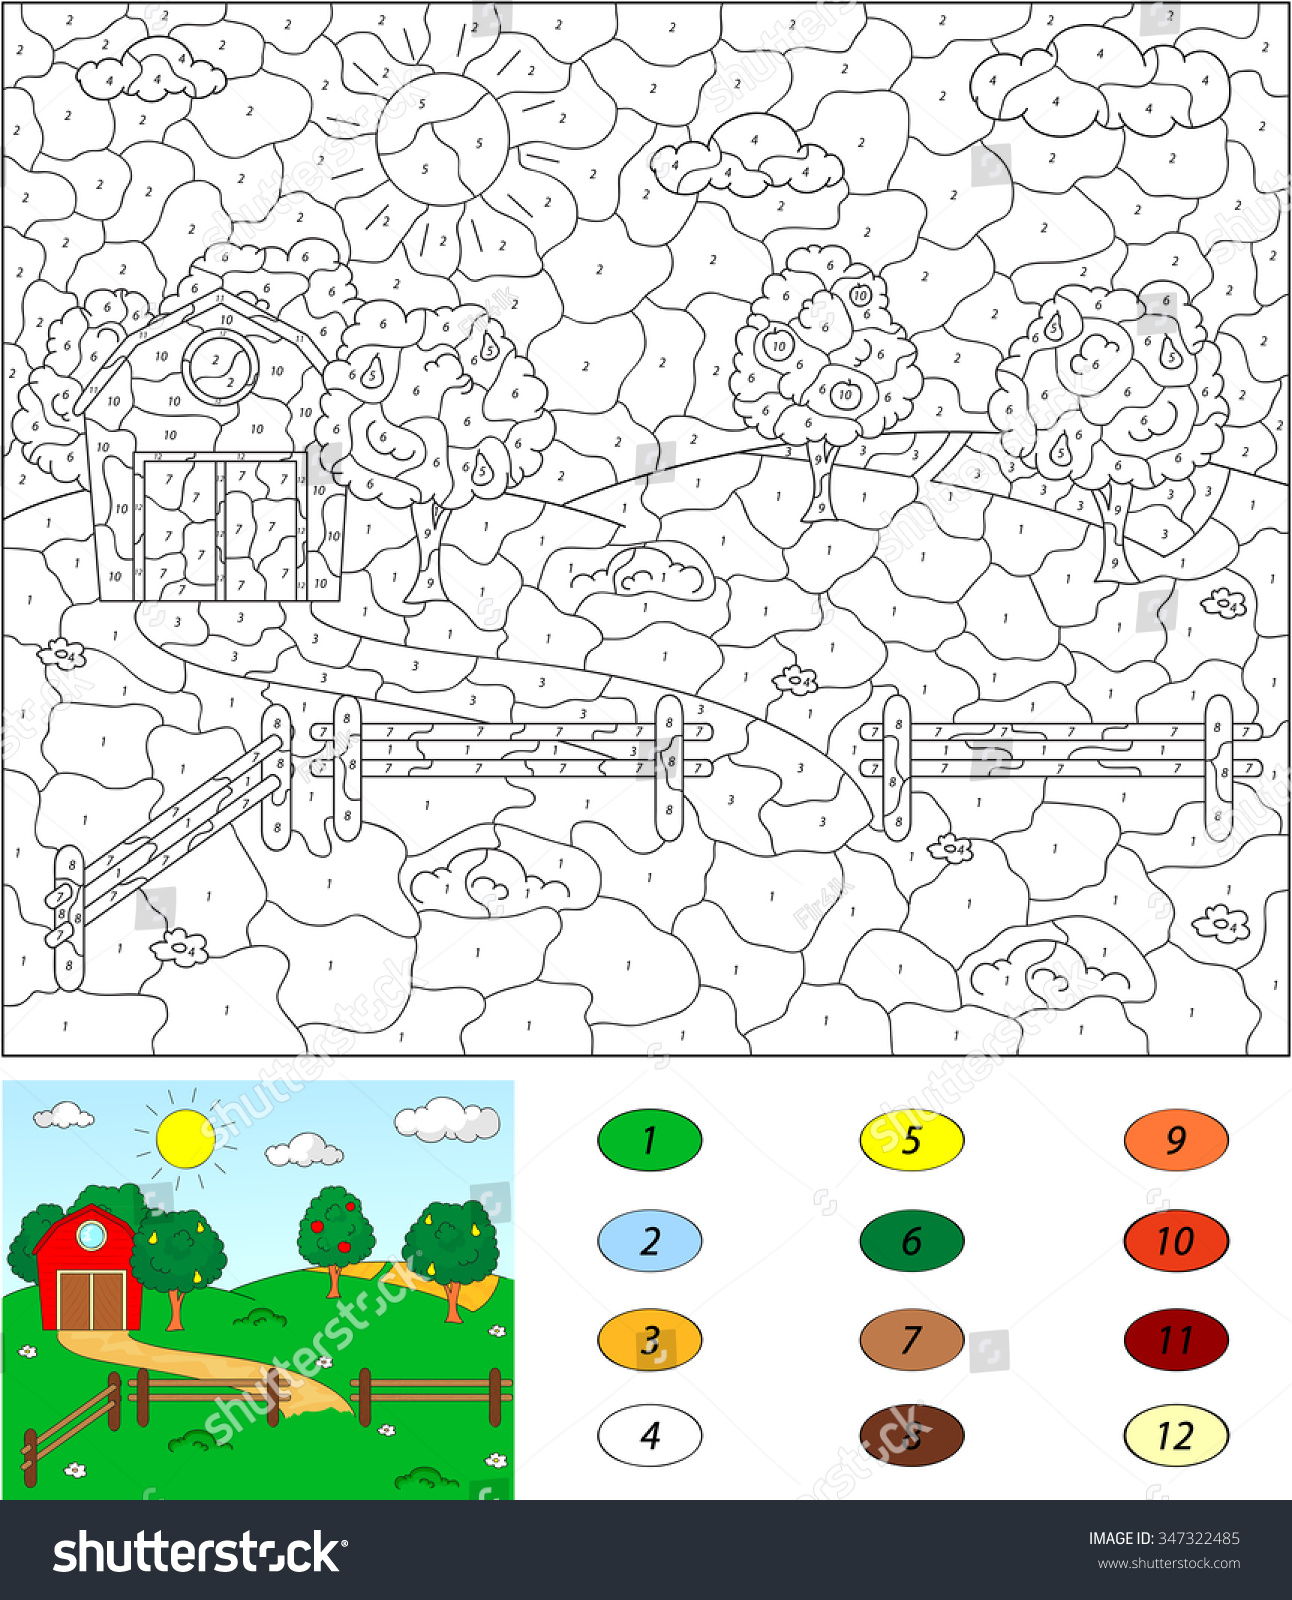 Game color by numbers - Color By Number Educational Game For Kids Rural Landscape With Barn Corrals Fruit